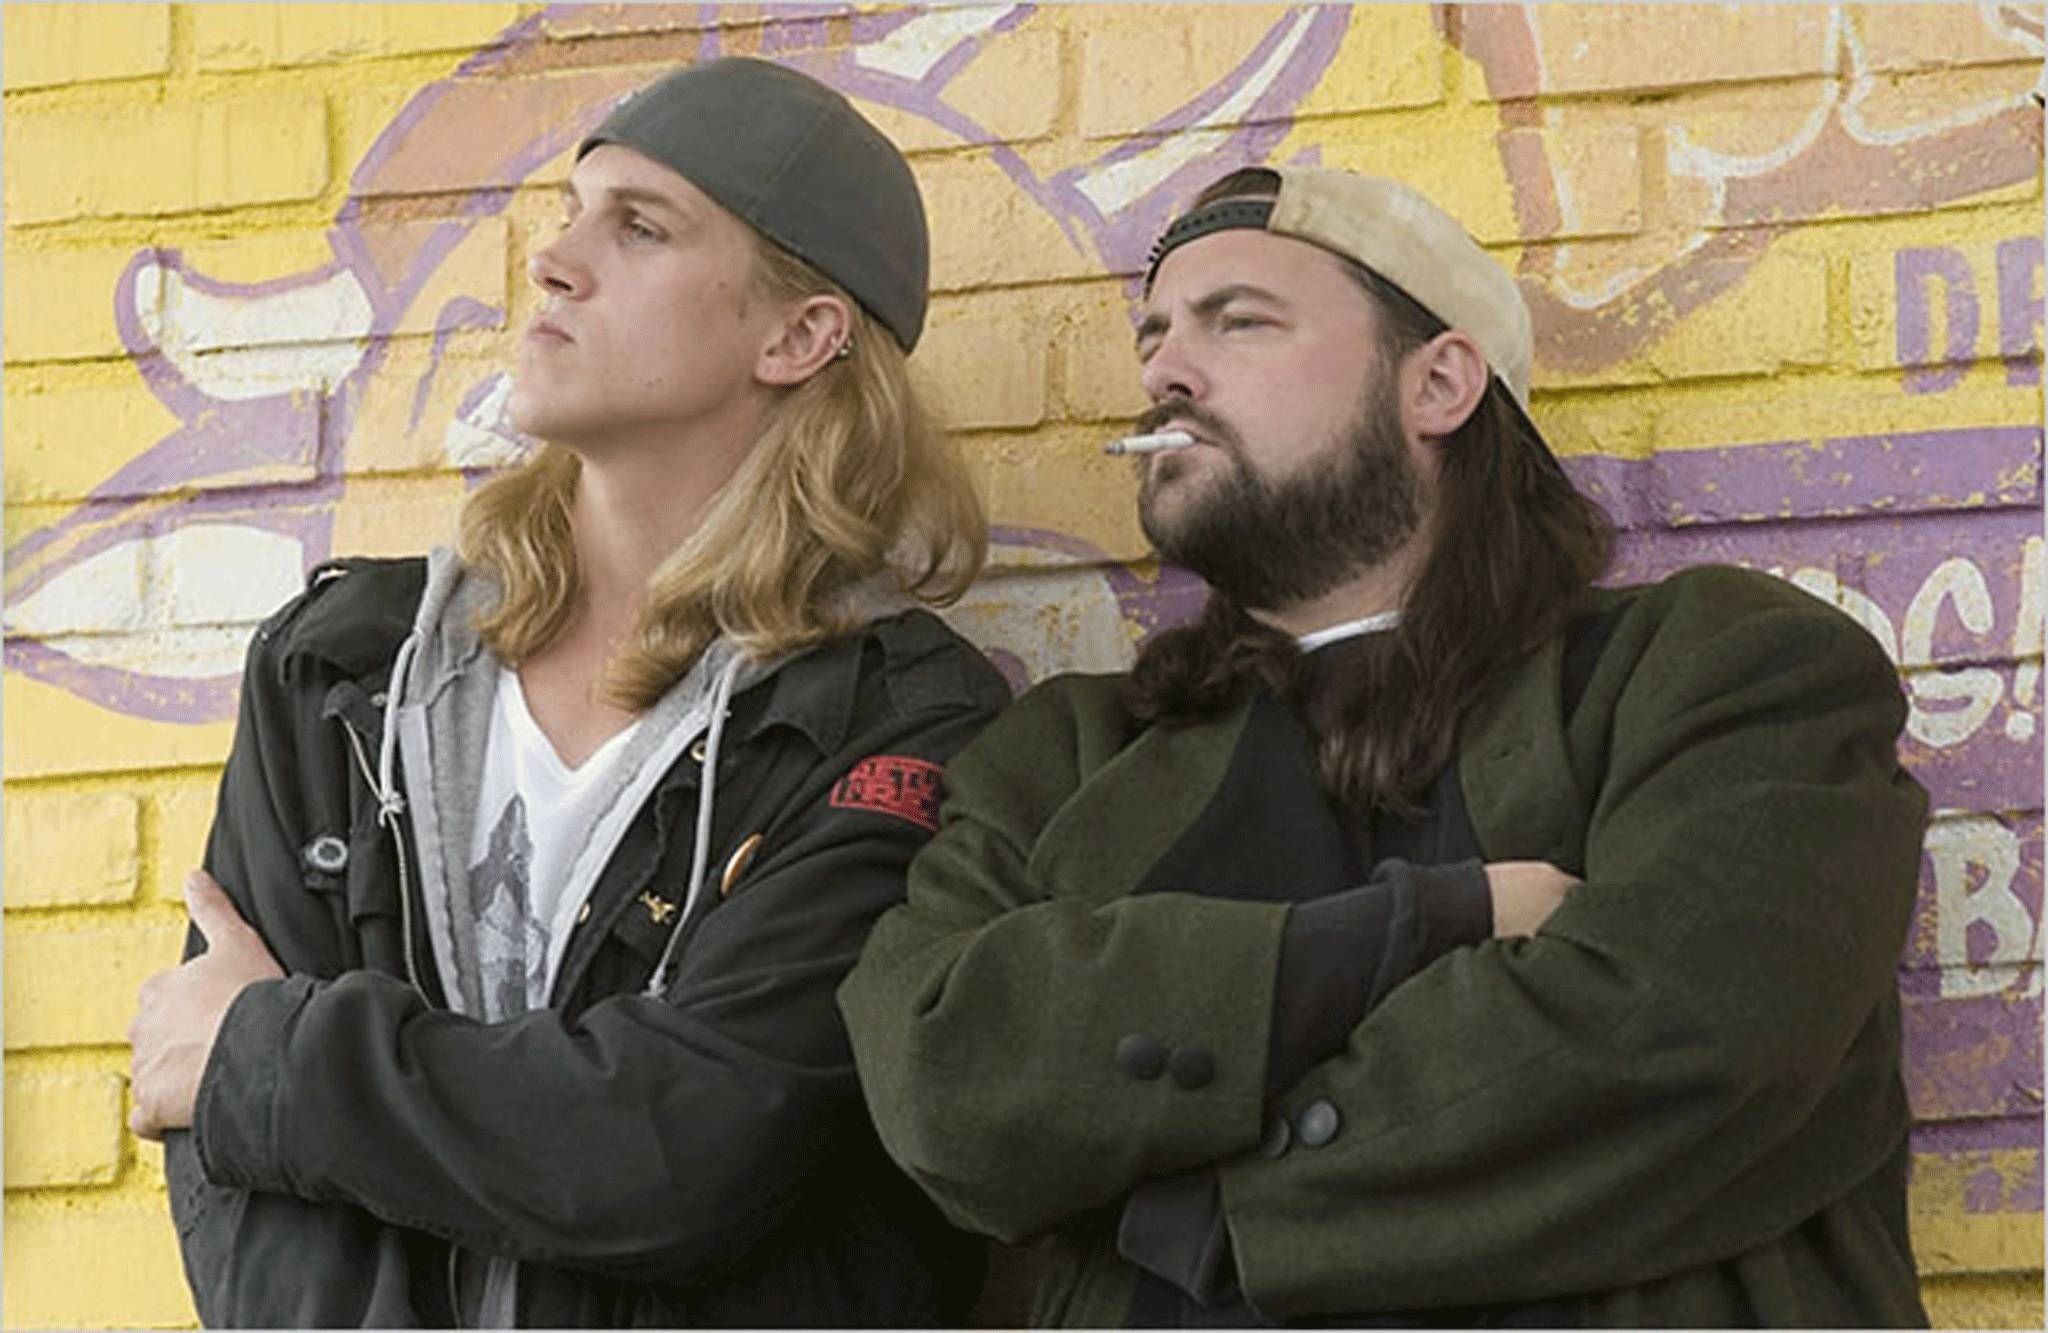 2048x1333 Awesome Movies, Good Movies, Silent Bob, Jason Mewes, Group Halloween,  Halloween